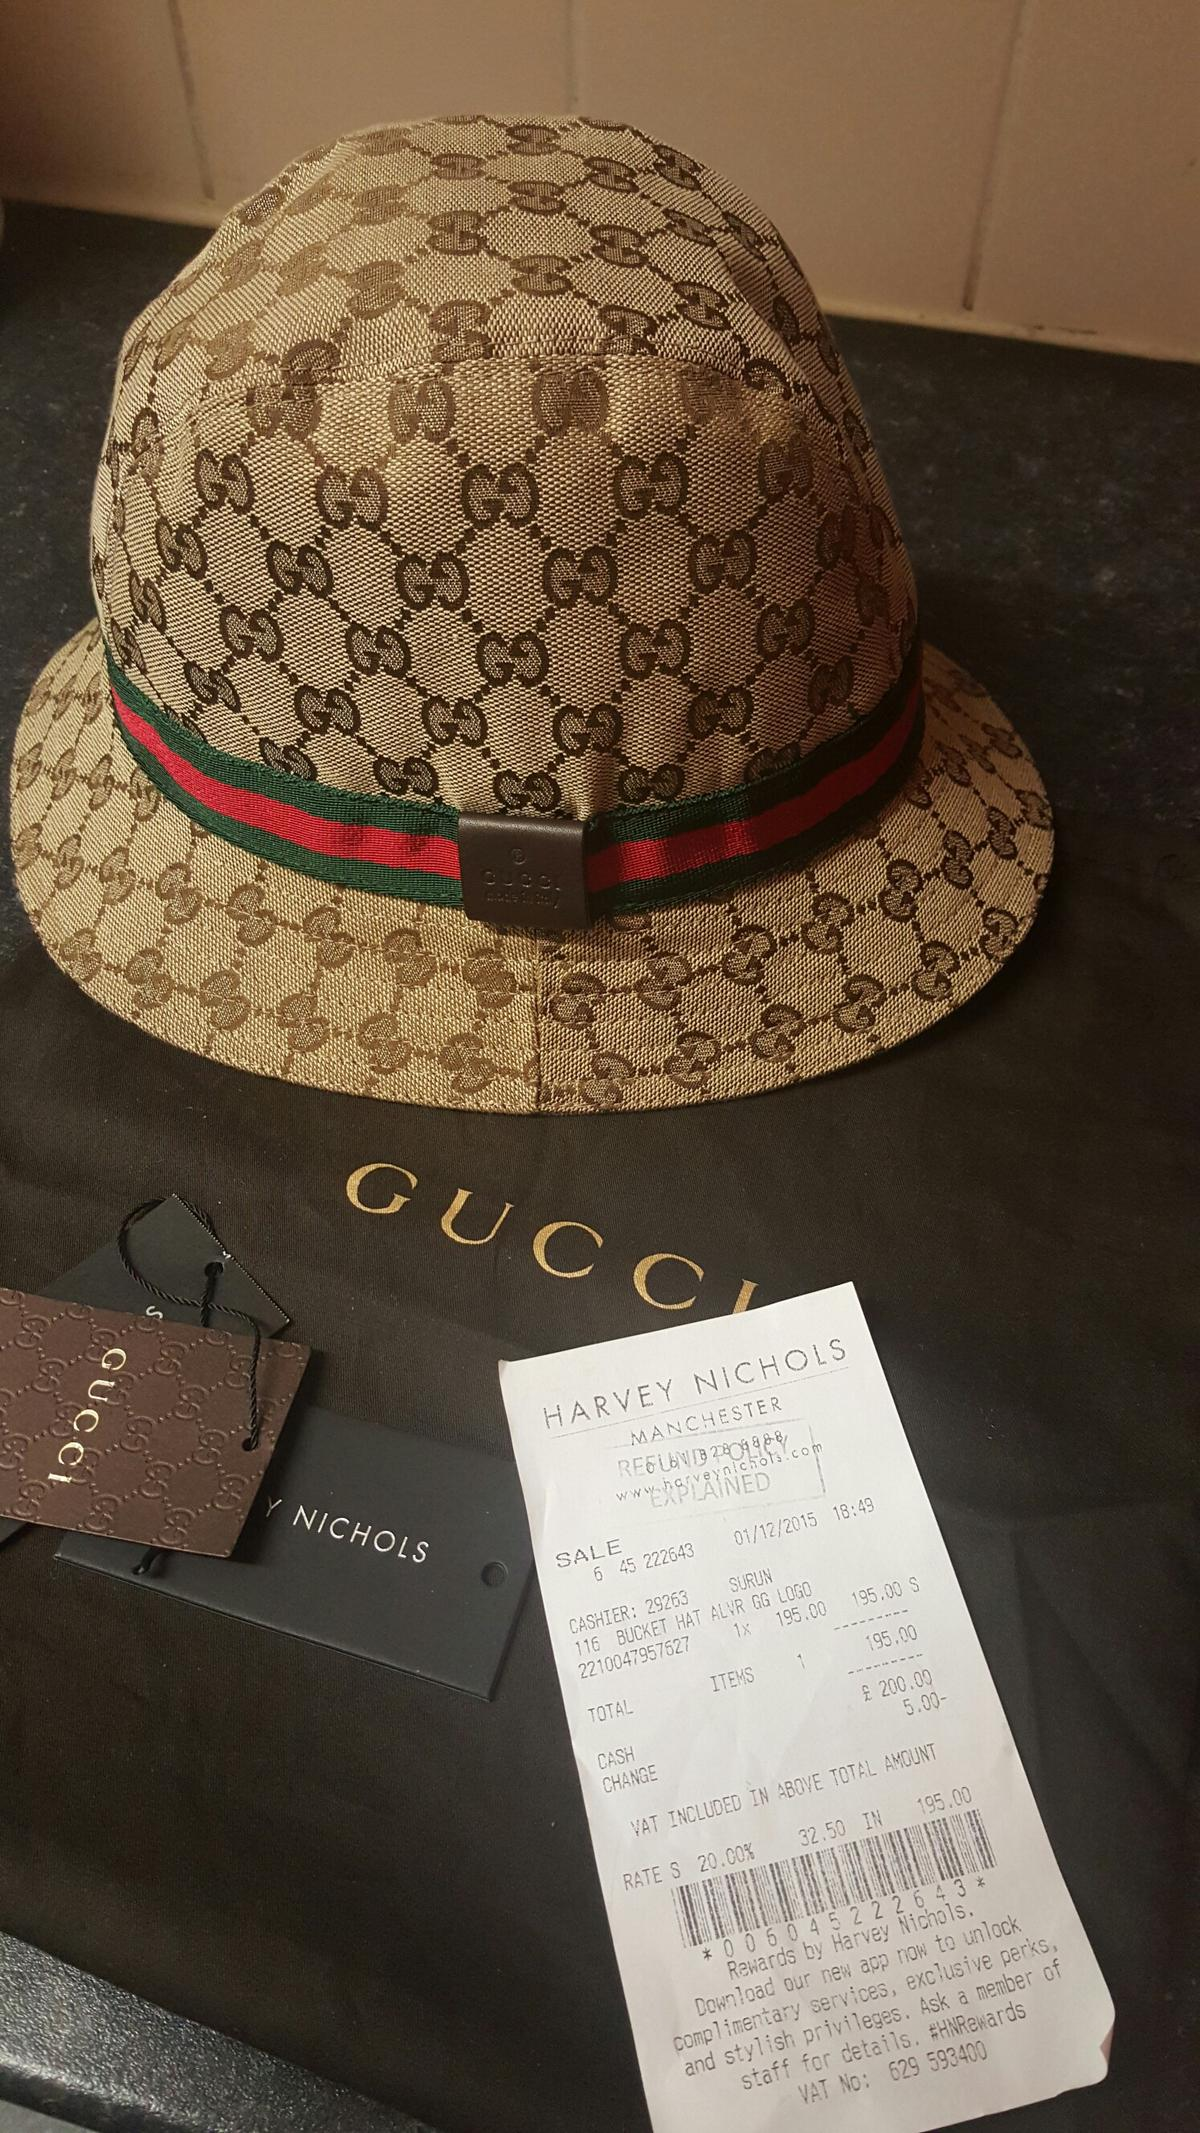 fde27669183 Gucci bucket hat in M16 Manchester for £150.00 for sale - Shpock